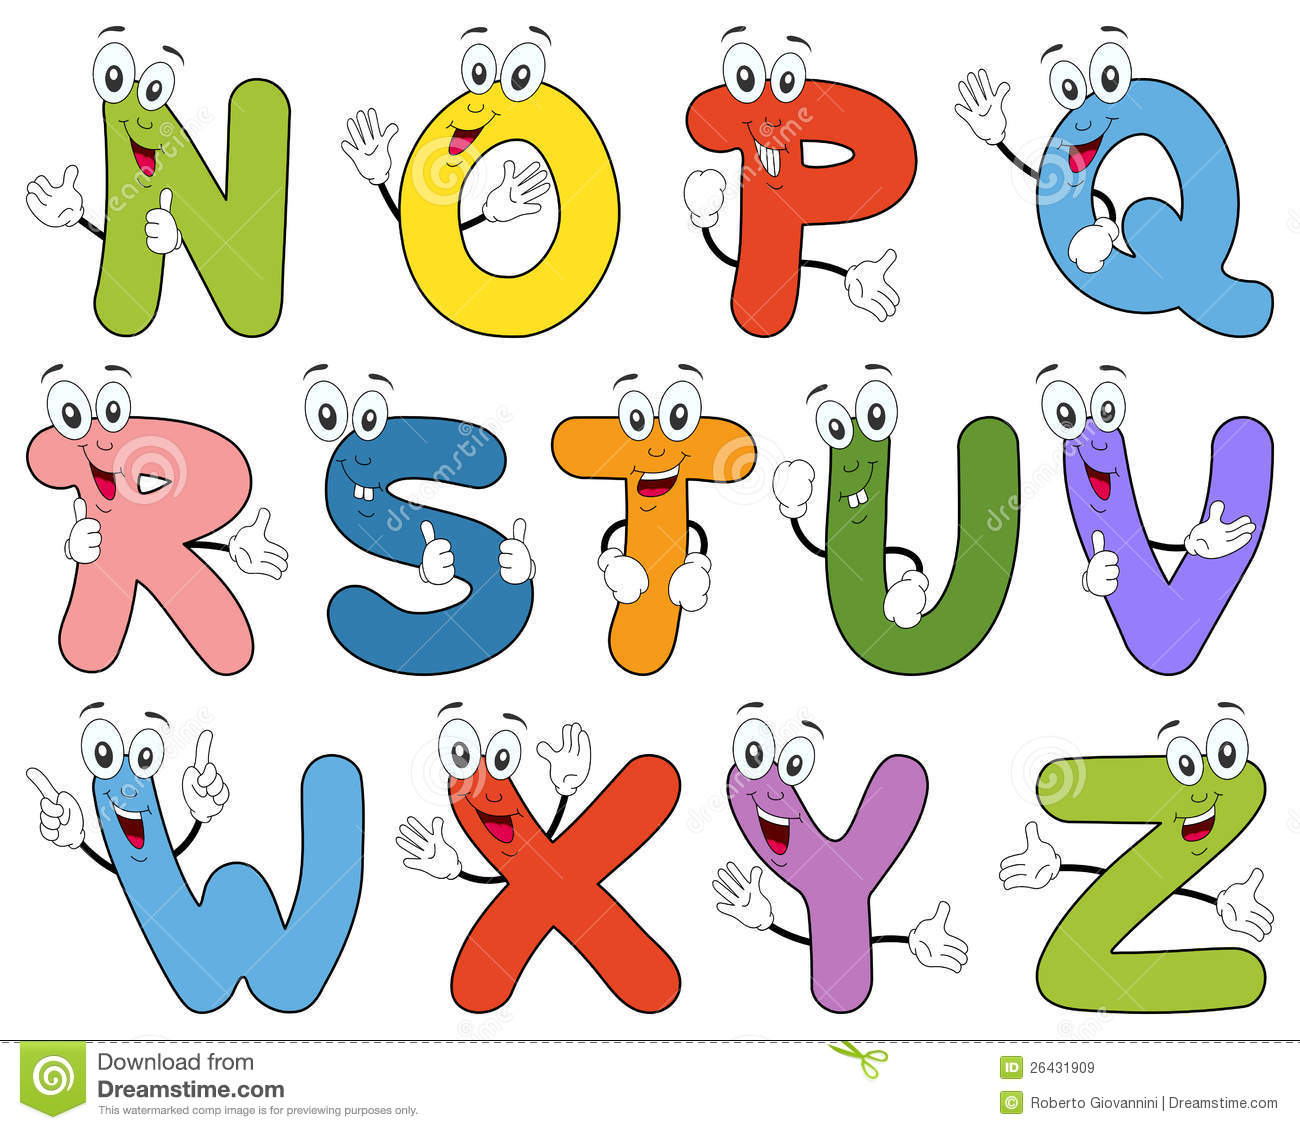 Royalty Free Stock Images Cartoon Alphabet Characters N Z Image26431909 on Letter Y Worksheets For Kindergarten